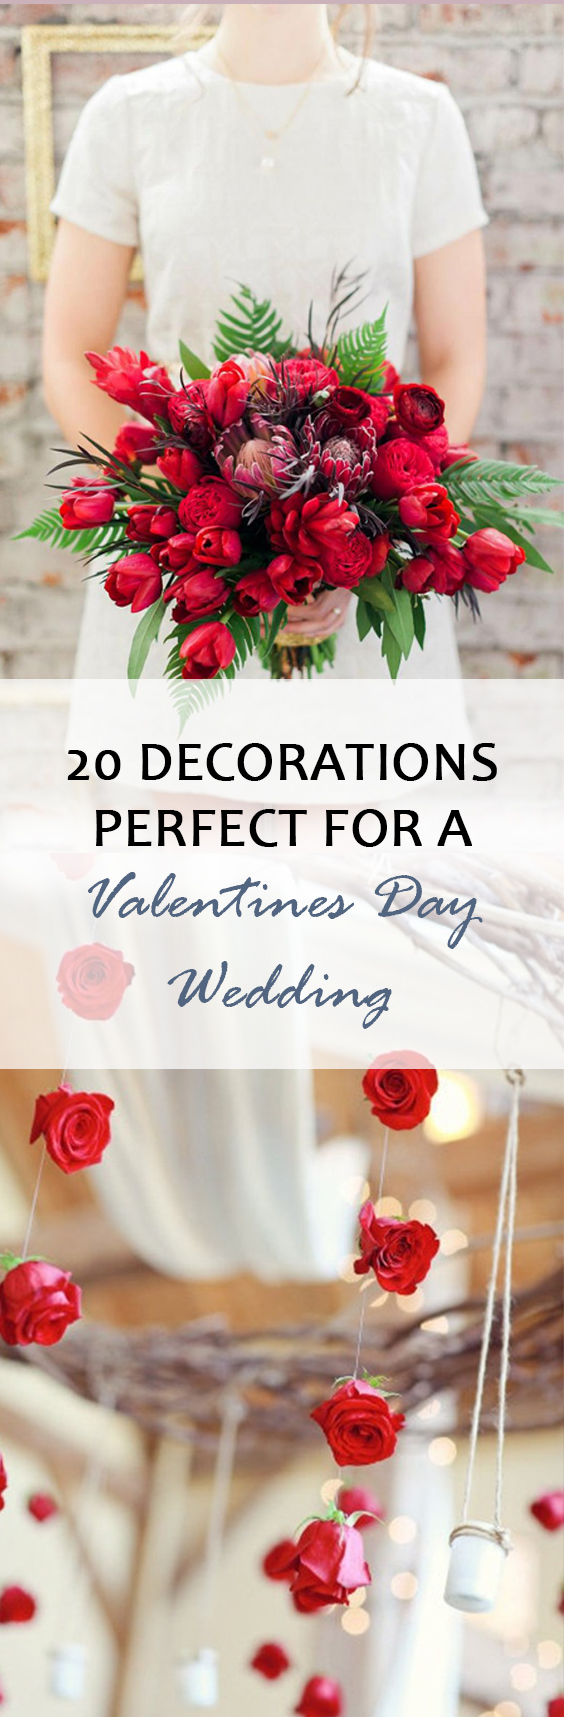 Valentines day, Valentine's Day Wedding, Wedding Decor, Wedding Decor tips, DIY Wedding, popular pin, Dream Wedding, Dream Wedding Decor